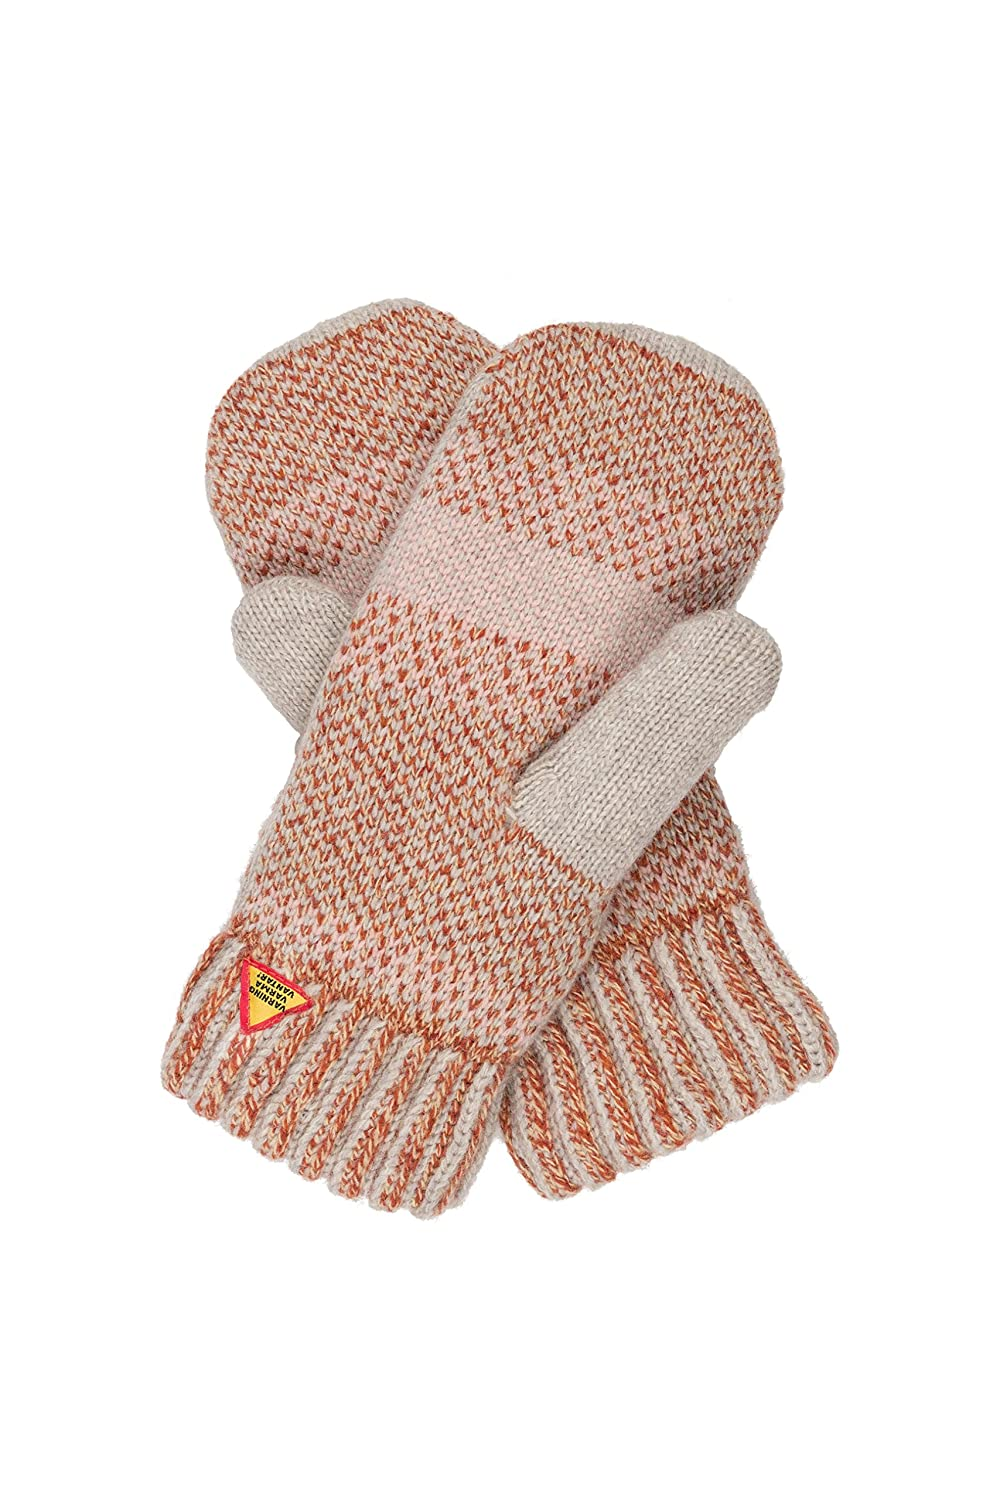 5b4e8f5f11f Öjbro Swedish made 100% Merino Wool Soft Thick   Extremely Warm Mittens (as  Featured larger image